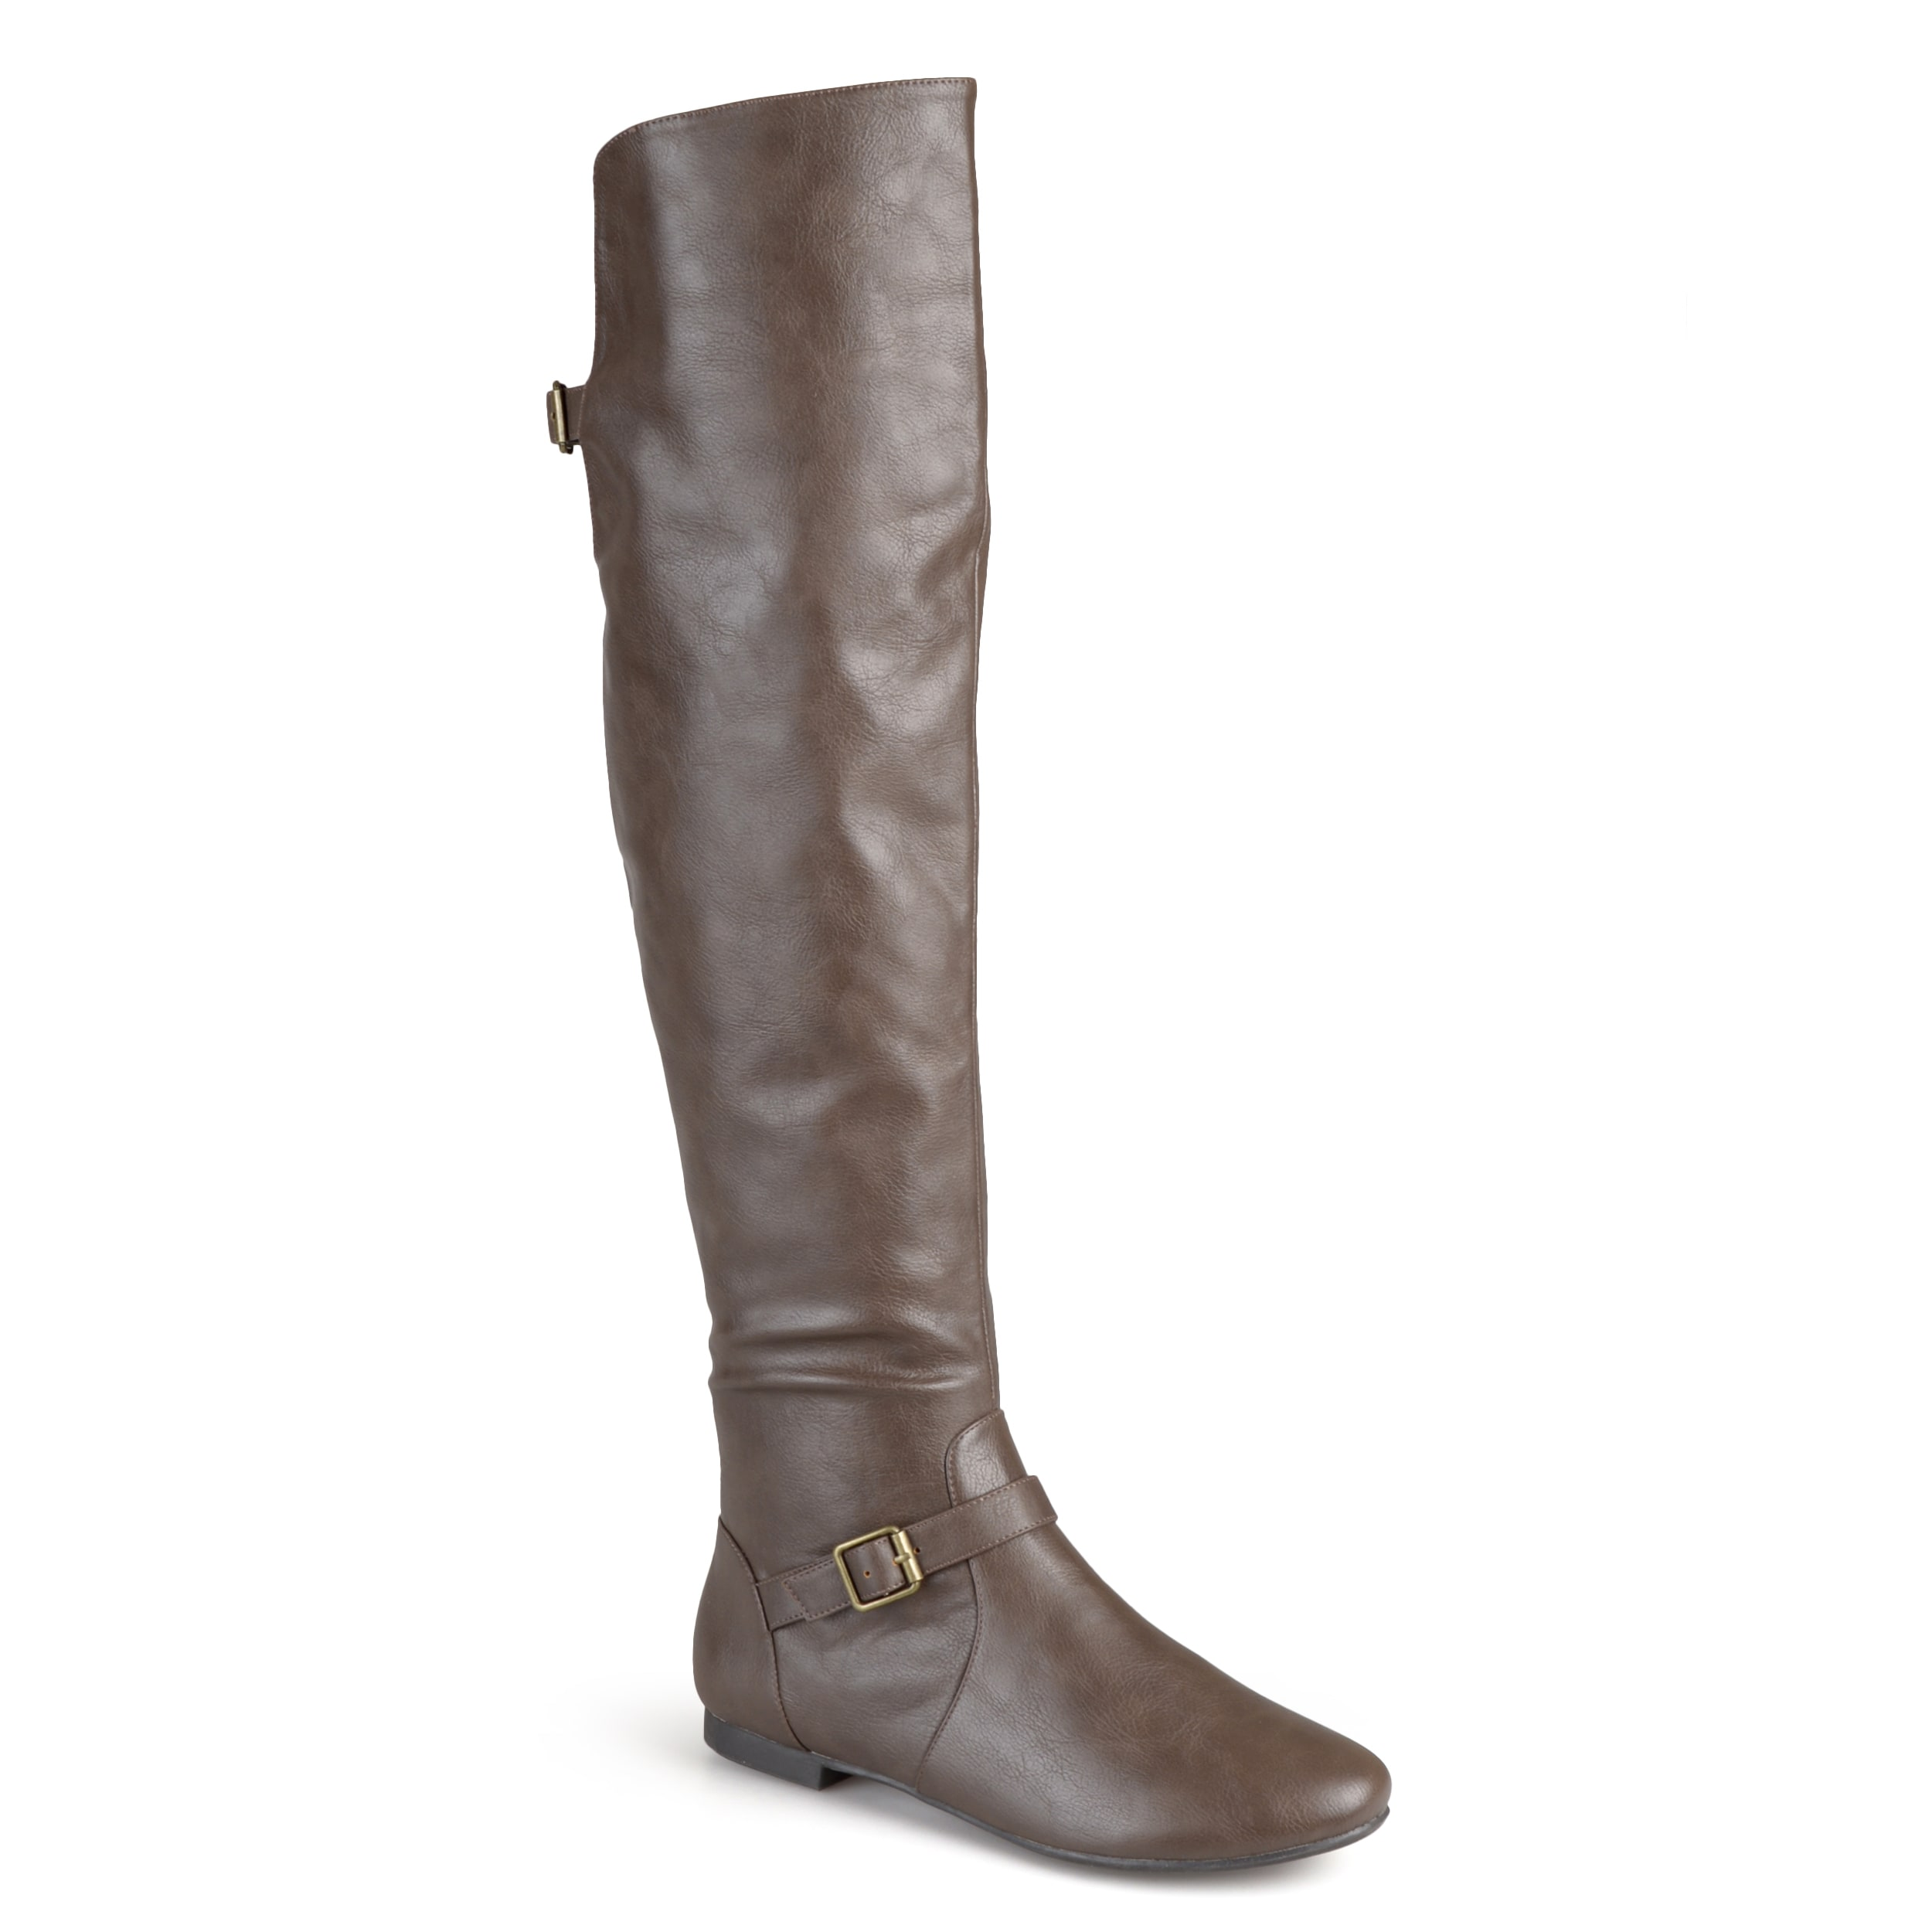 63a52cf6ff2 Journee Collection Women s  Loft  Regular and Wide-calf Tall Round Toe  Buckle Riding Boots